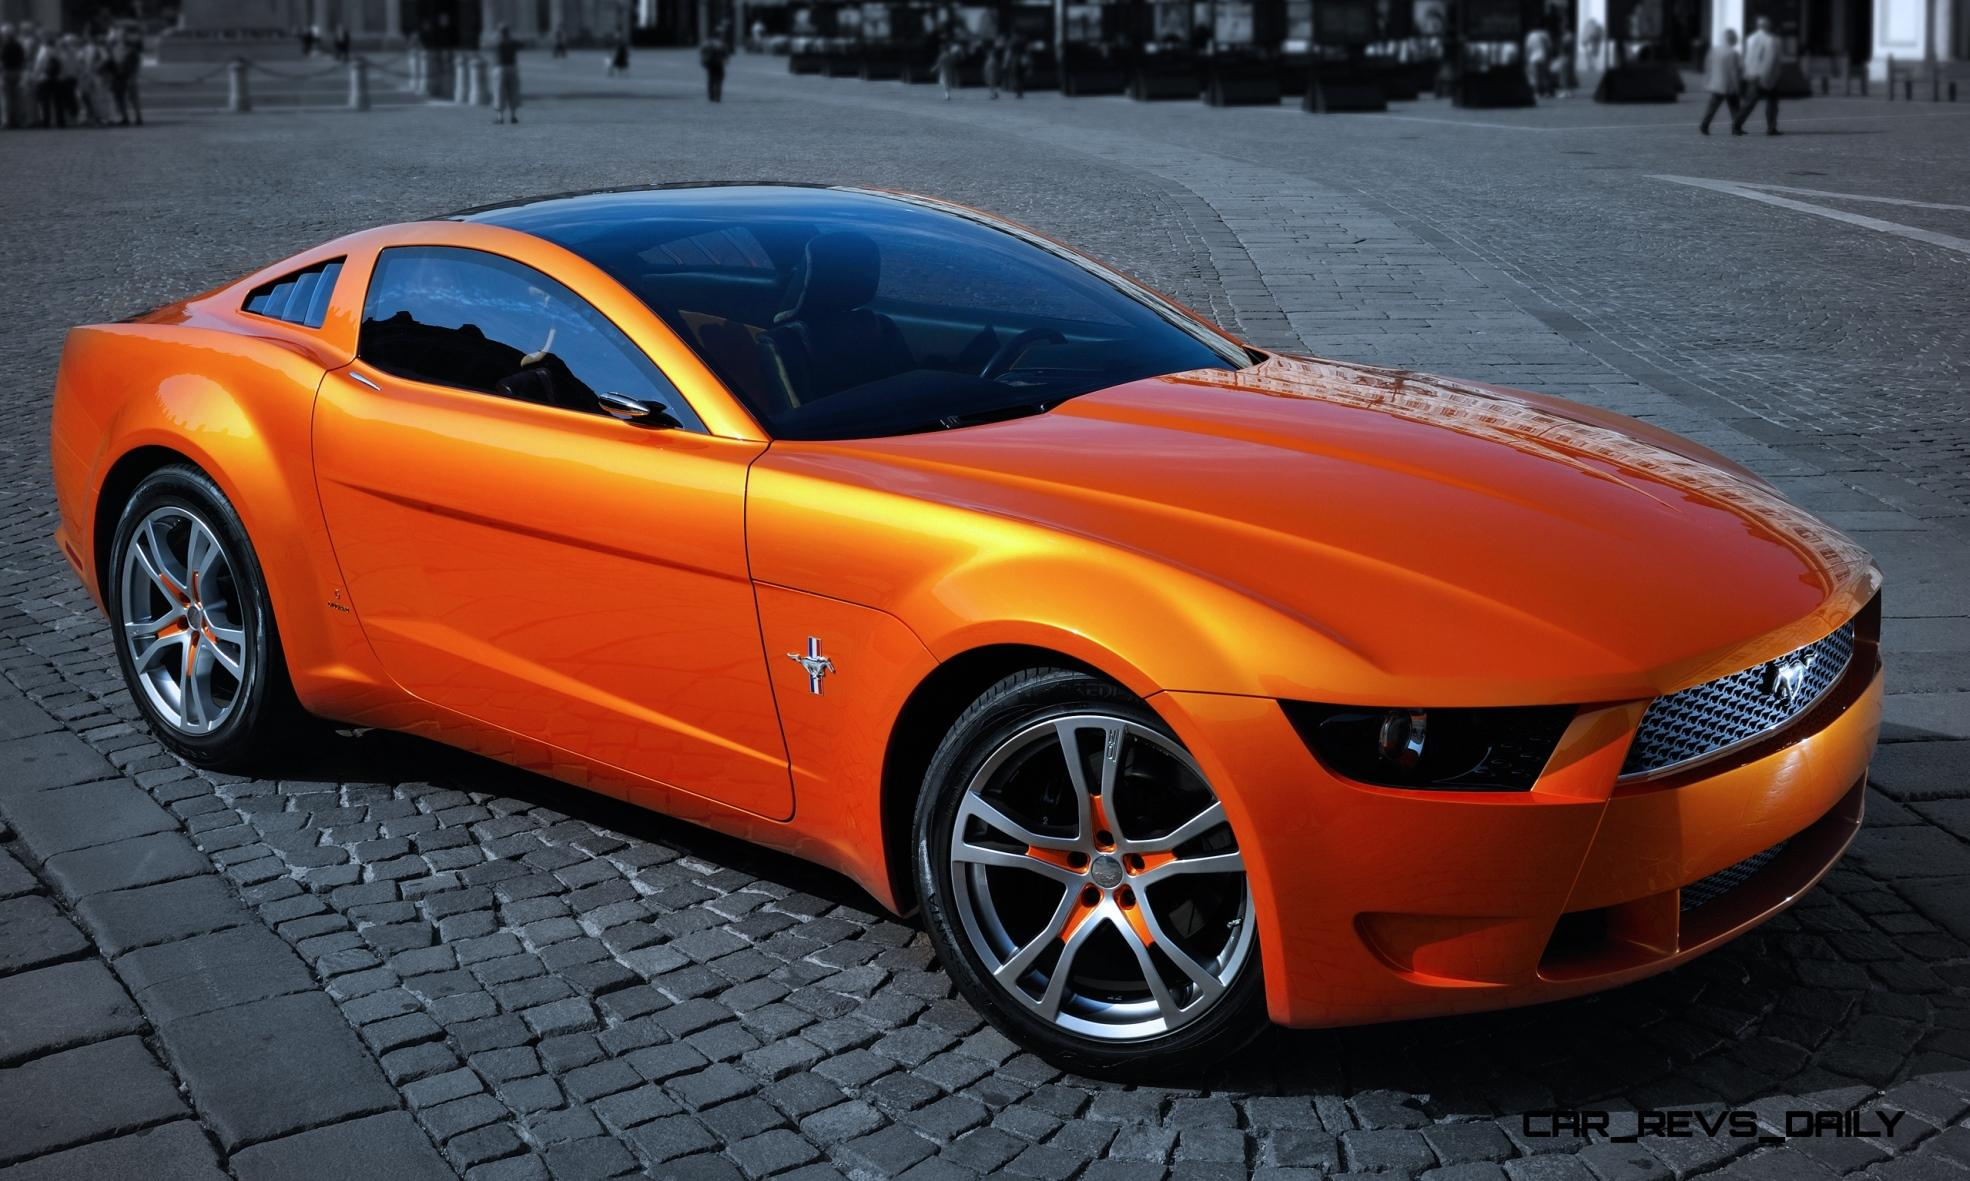 2006 Giugiaro Ford Mustang Concept Was Ringer vs In-House ...